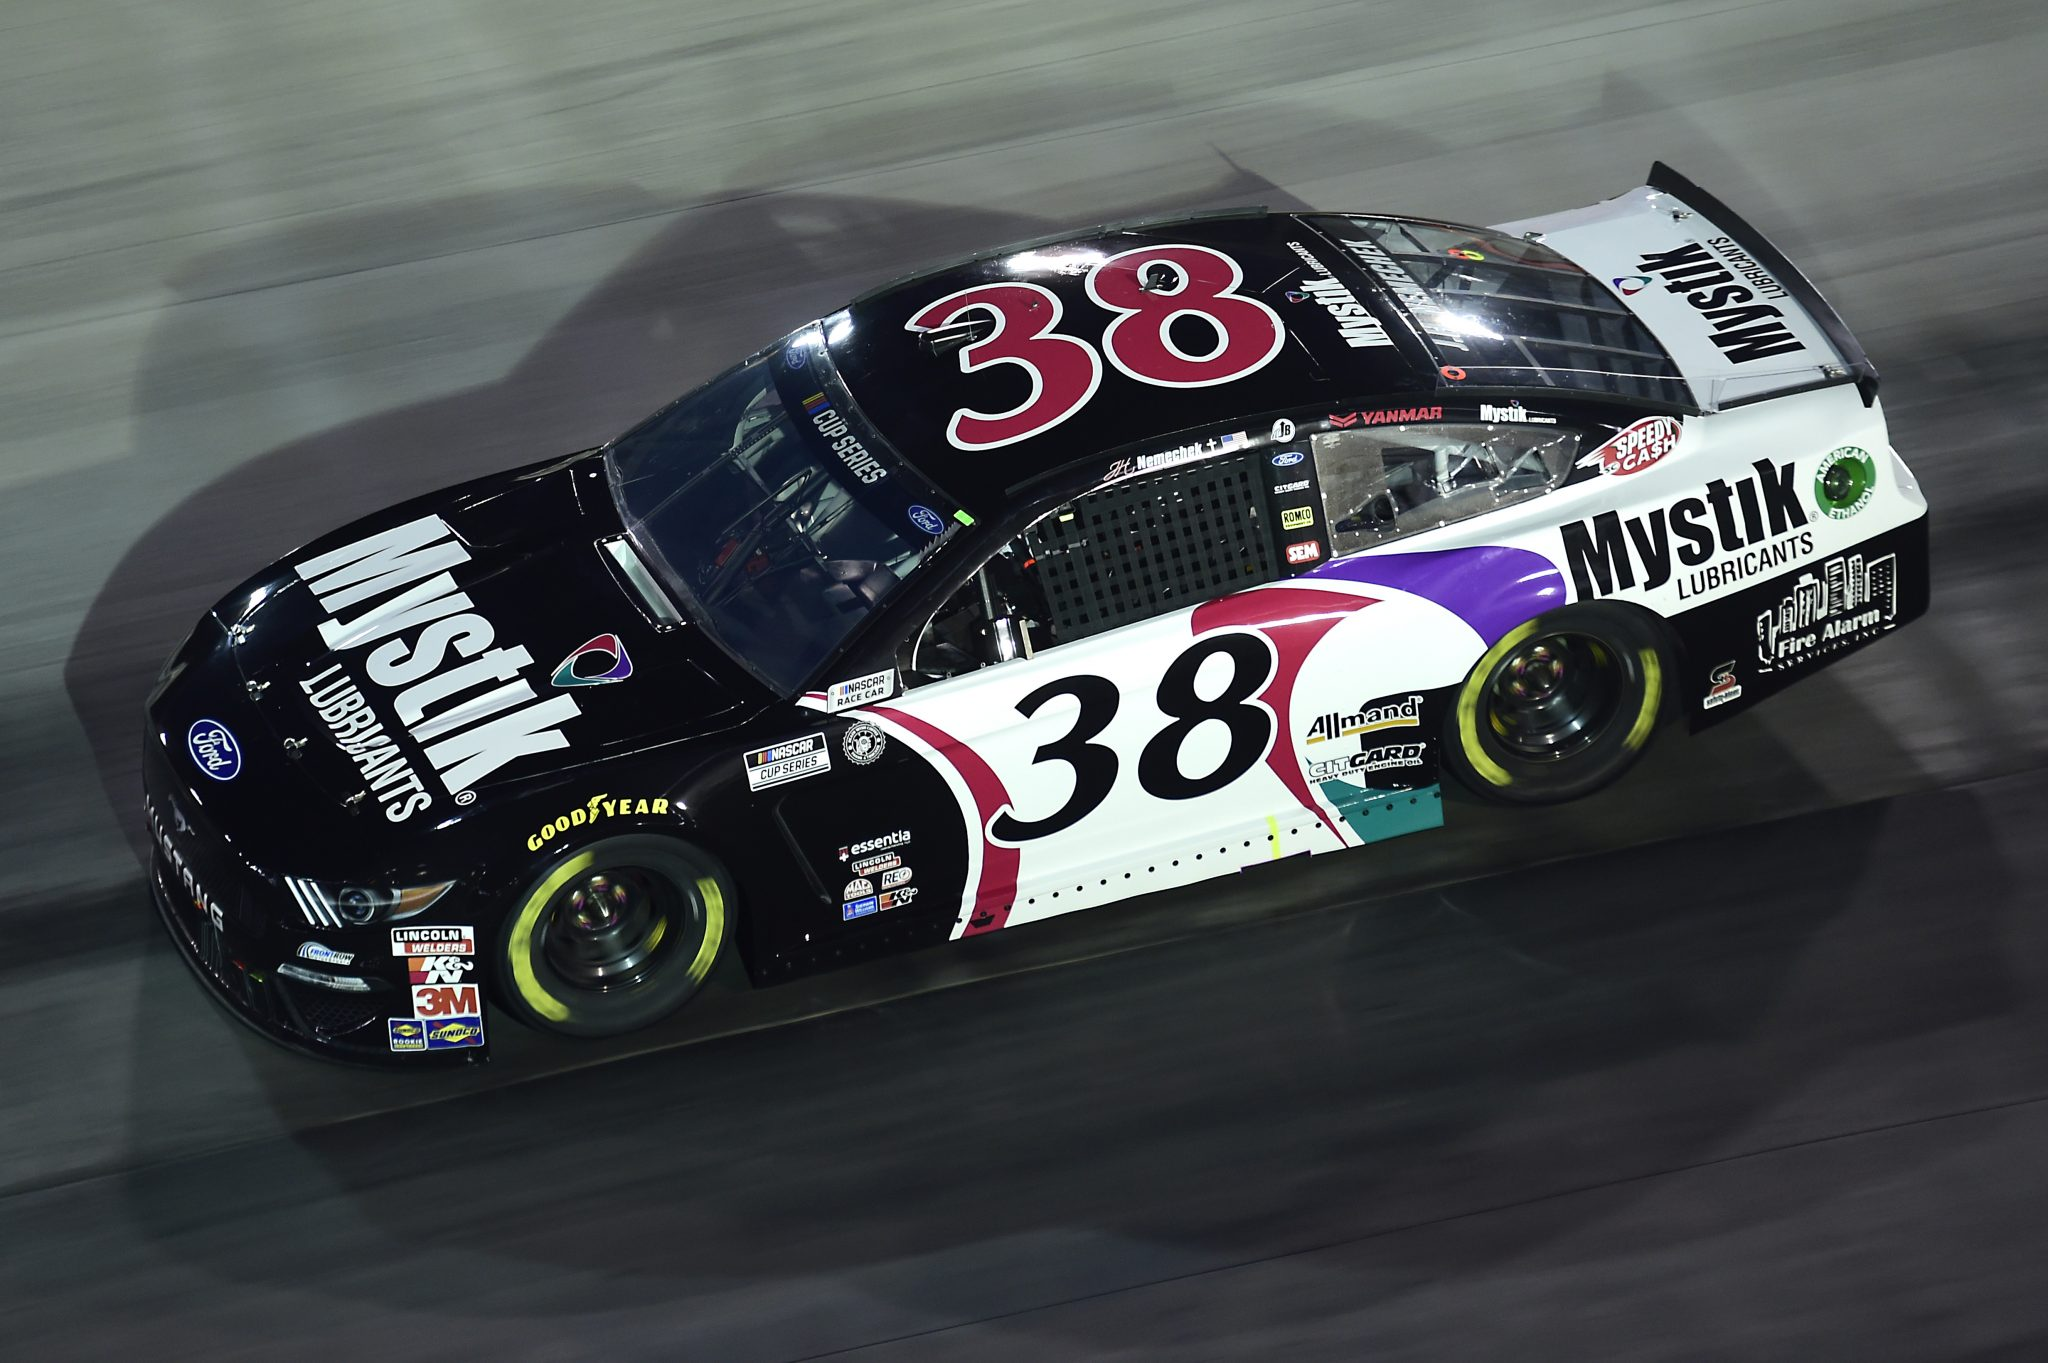 BRISTOL, TENNESSEE - SEPTEMBER 19: John H. Nemechek, driver of the #38 Mystik Michigan Ford, drives during the NASCAR Cup Series Bass Pro Shops Night Race at Bristol Motor Speedway on September 19, 2020 in Bristol, Tennessee. (Photo by Jared C. Tilton/Getty Images) | Getty Images